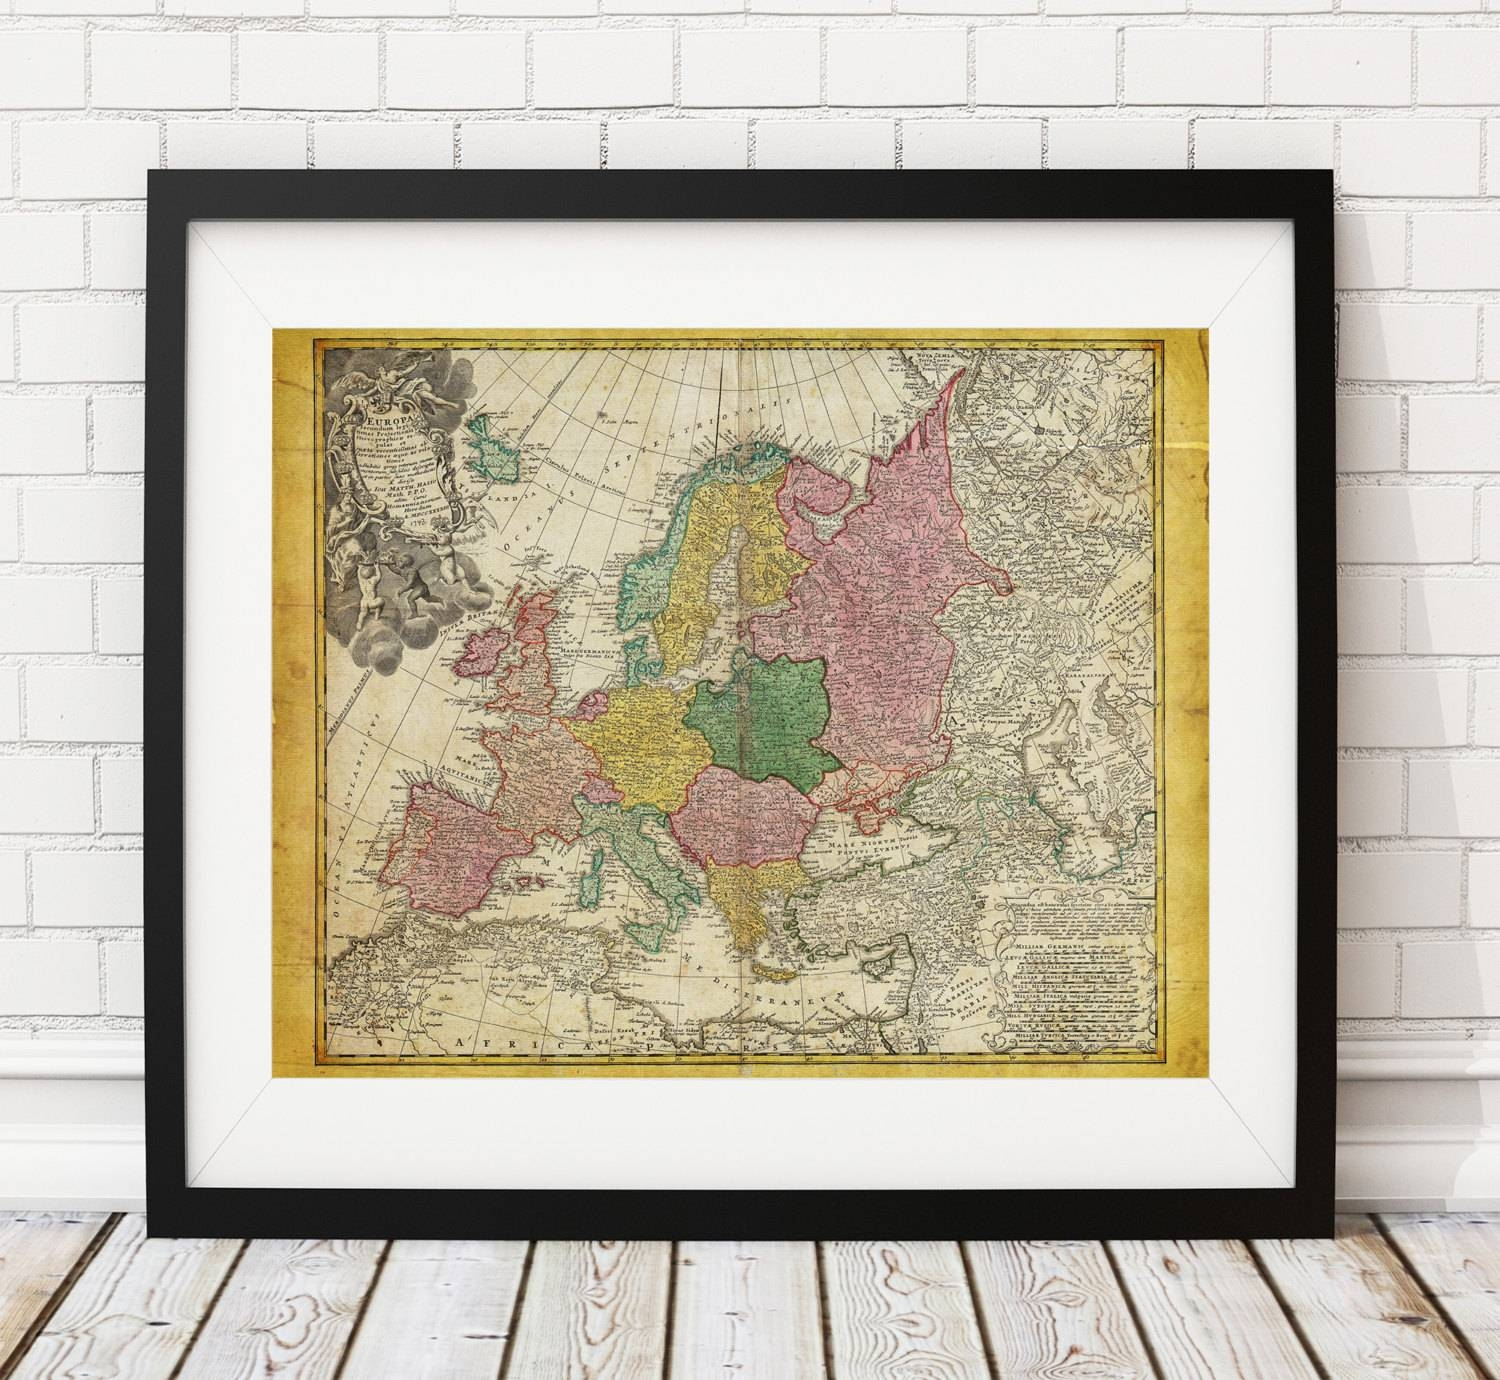 Europe Map Print, Vintage Map Art, Antique Map, Wall Art, History Intended For Recent Europe Map Wall Art (View 3 of 20)